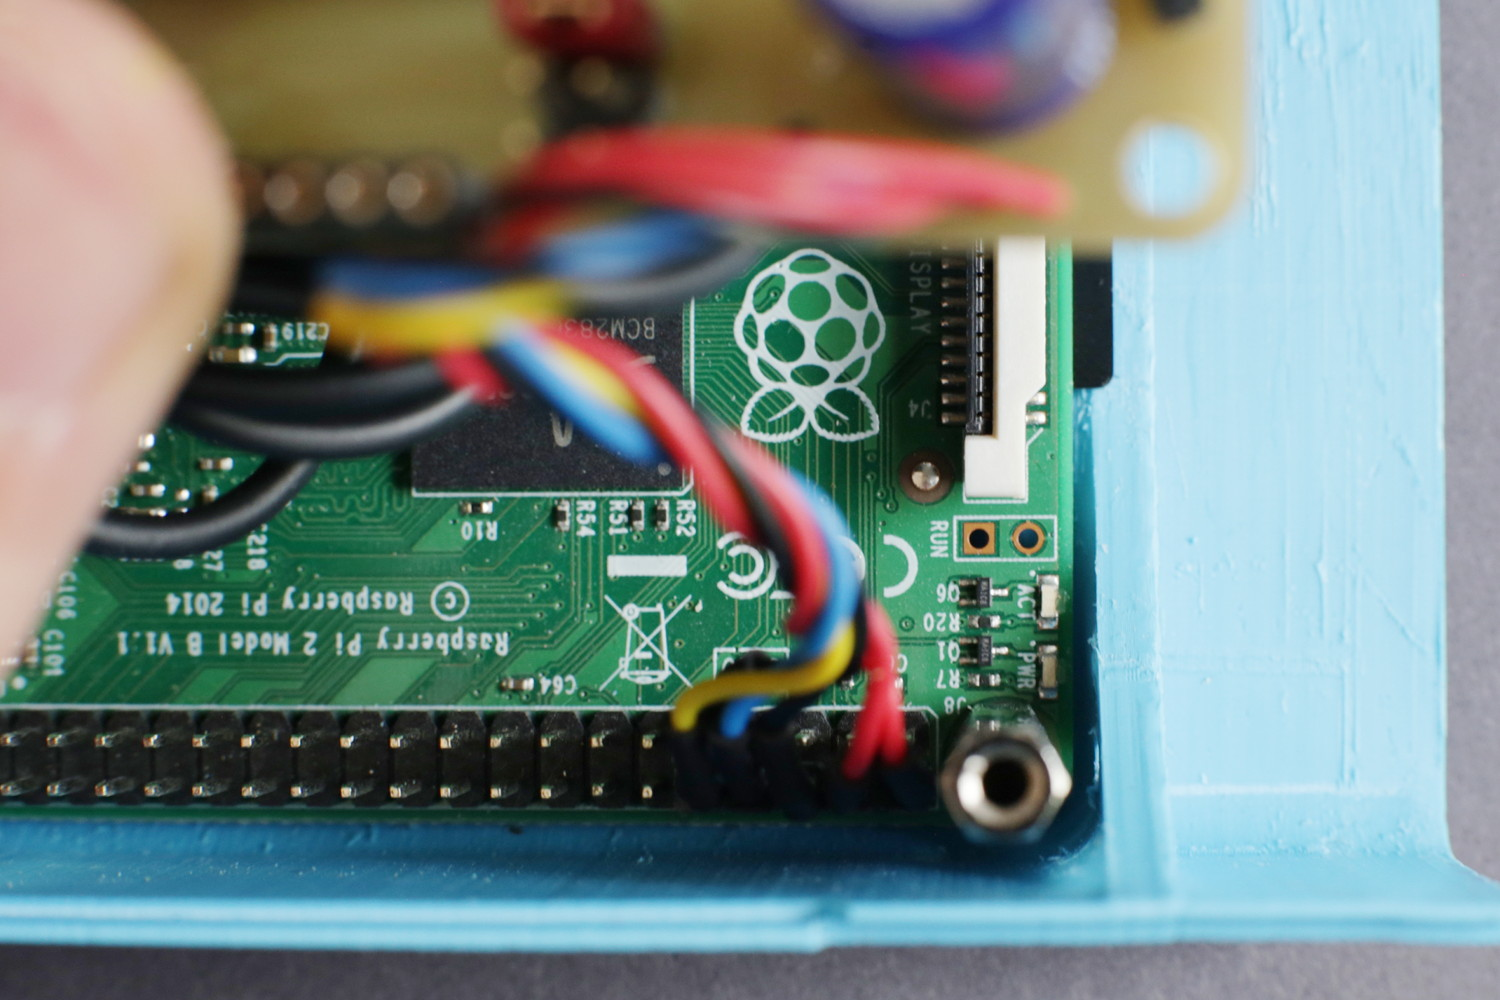 ... and plug it onto the GPIO header of your Raspberry Pi 2.